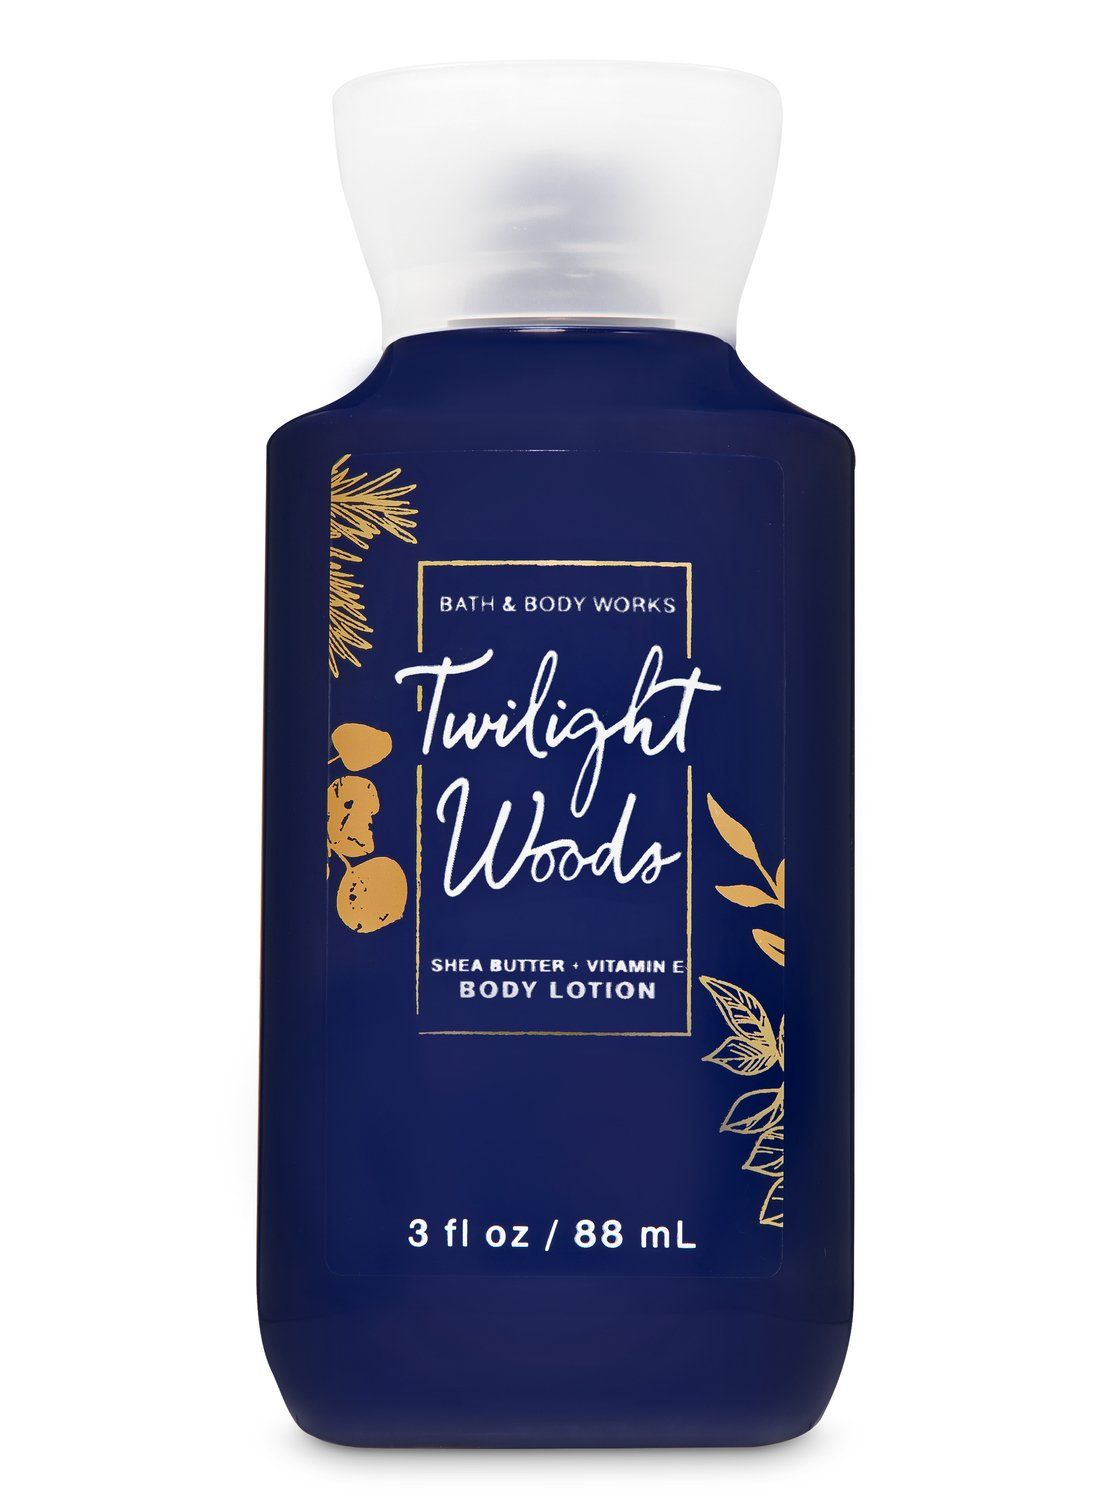 Twilight Woods Travel Size Body Lotion Bath And Body Works Big Clearancesale 3days Only All 1 99 In 2020 Bath And Body Works Body Lotion Travel Size Products